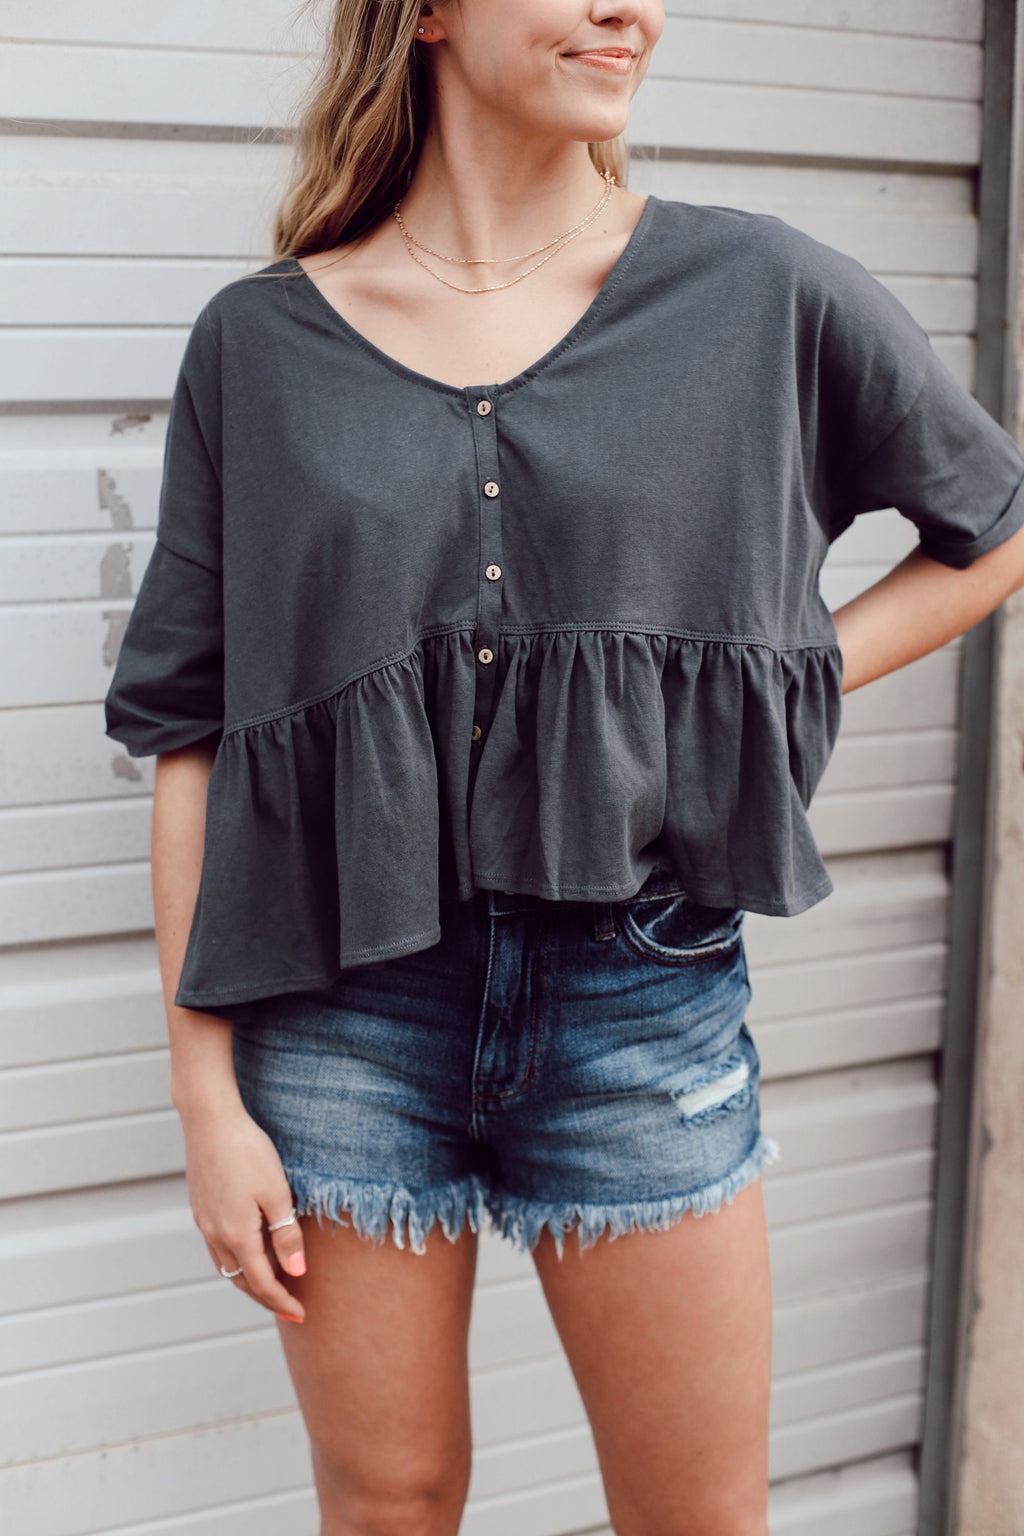 Charcoal Baby Doll Top